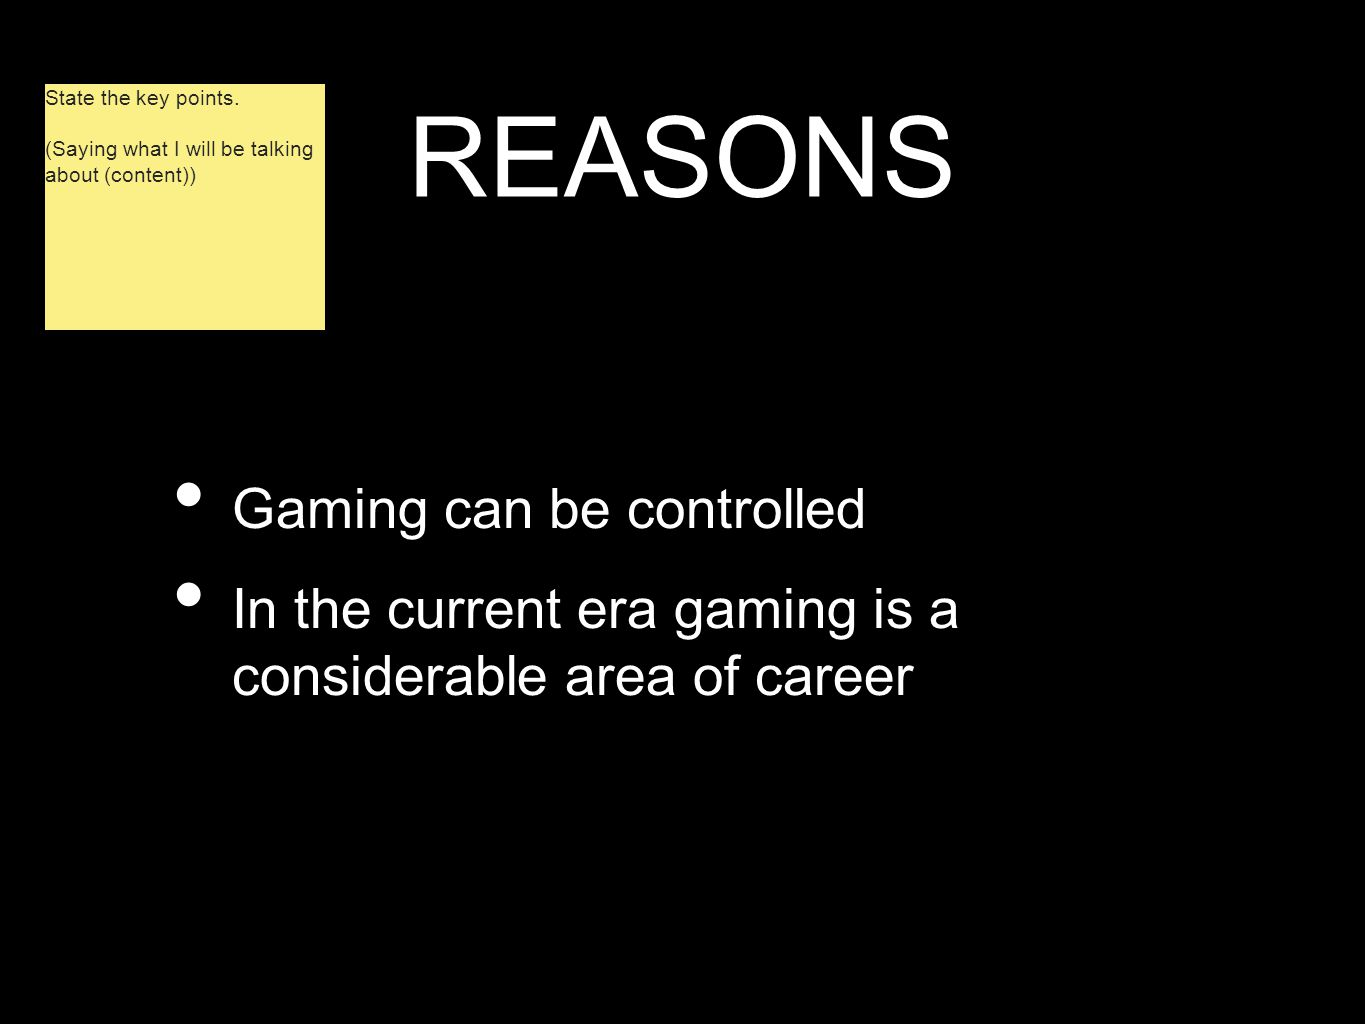 REASONS Gaming can be controlled In the current era gaming is a considerable area of career State the key points. (Saying what I will be talking about